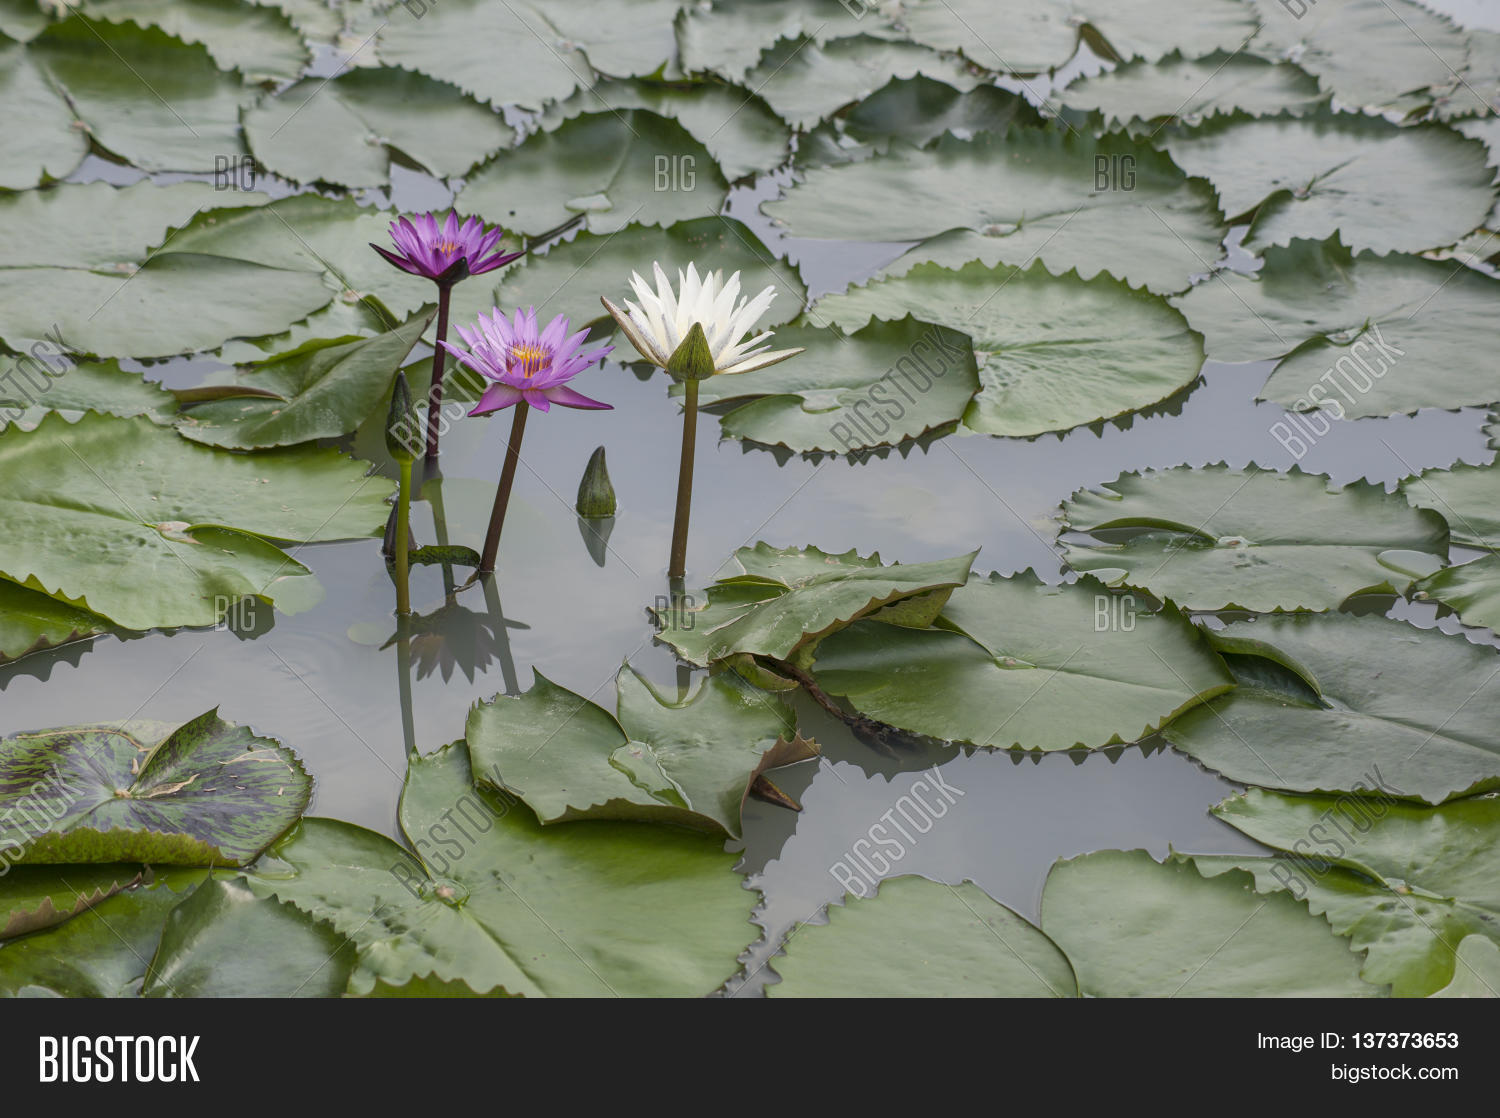 Water lily lotus image photo free trial bigstock water lily and lotus flowers growing in ponds and rivers izmirmasajfo